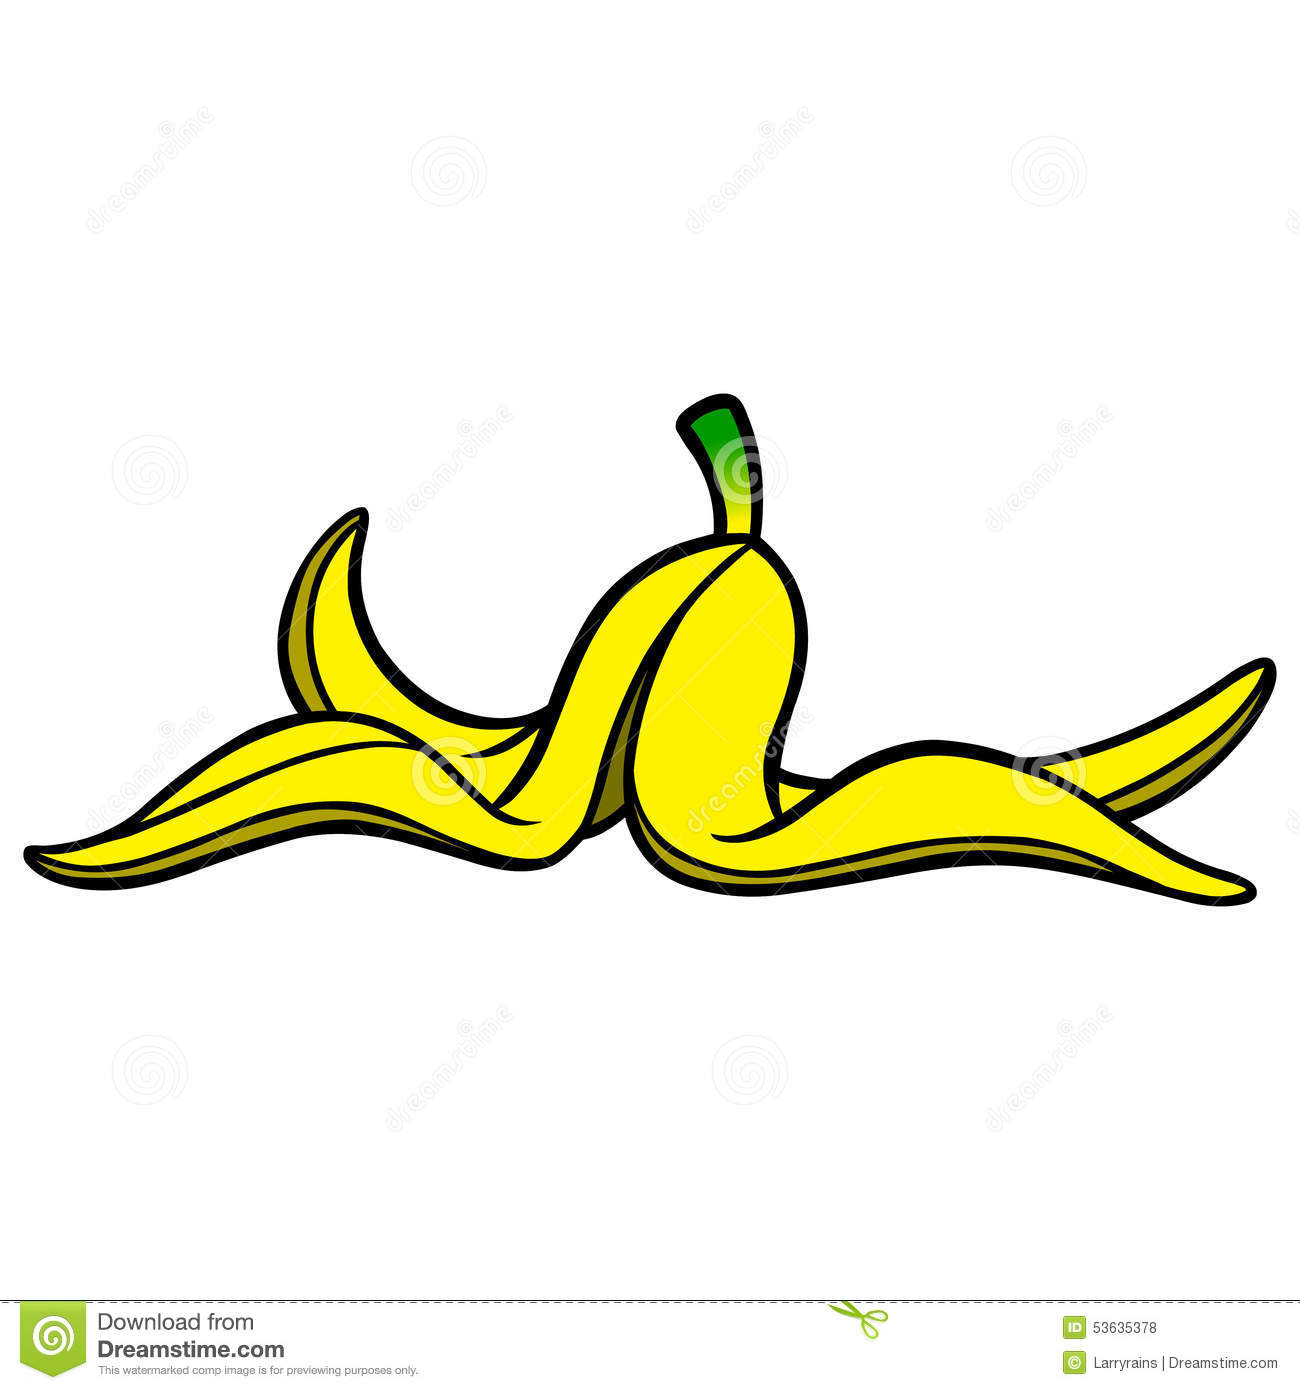 Banana Peel Clipart Banana. Banana Peel Royalty Free Stock .